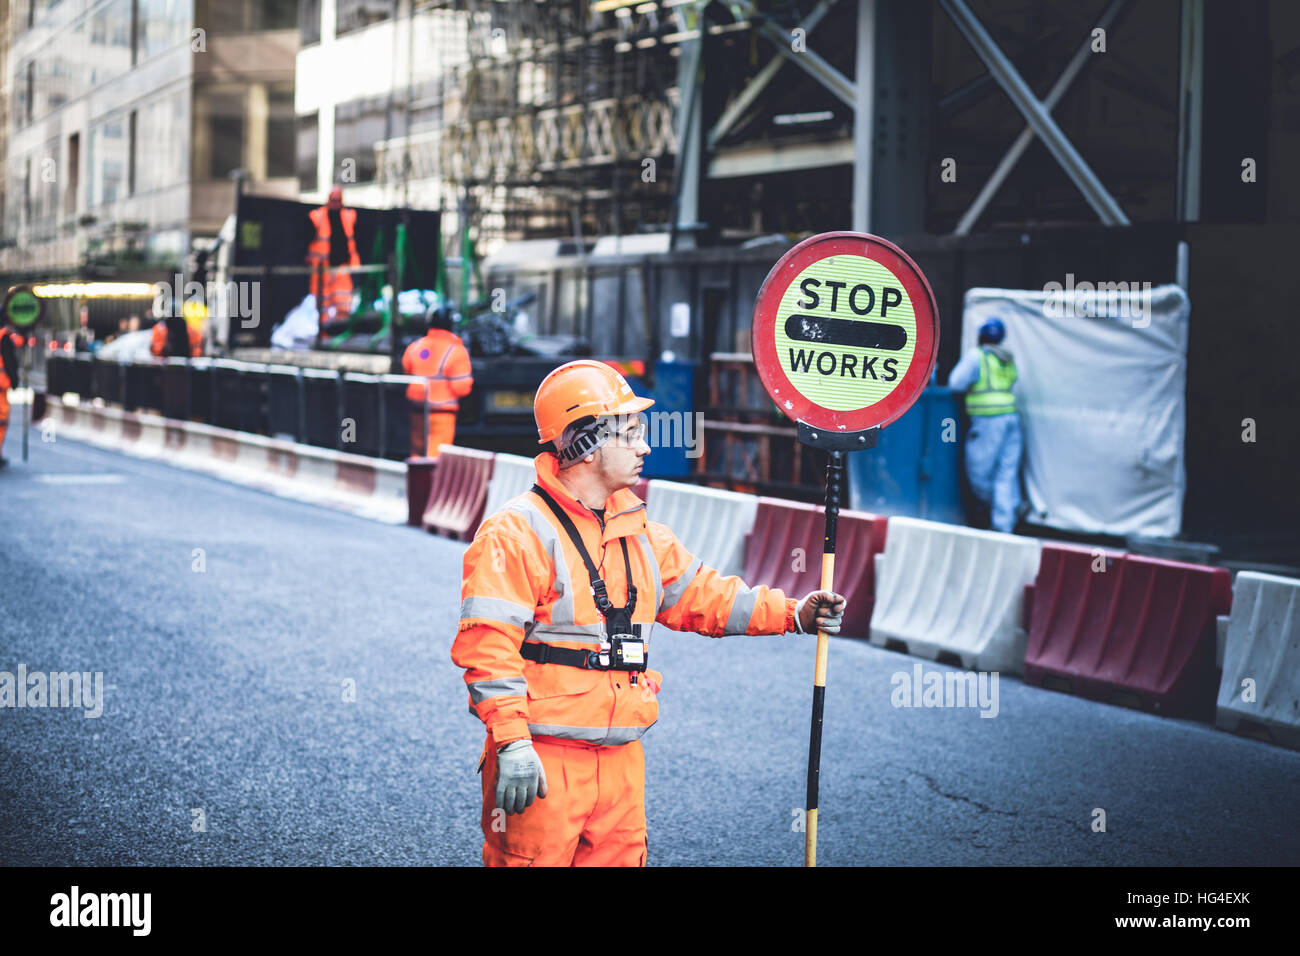 London UK, Workers blocking the road traffic for works with a STOP road sign Stock Photo